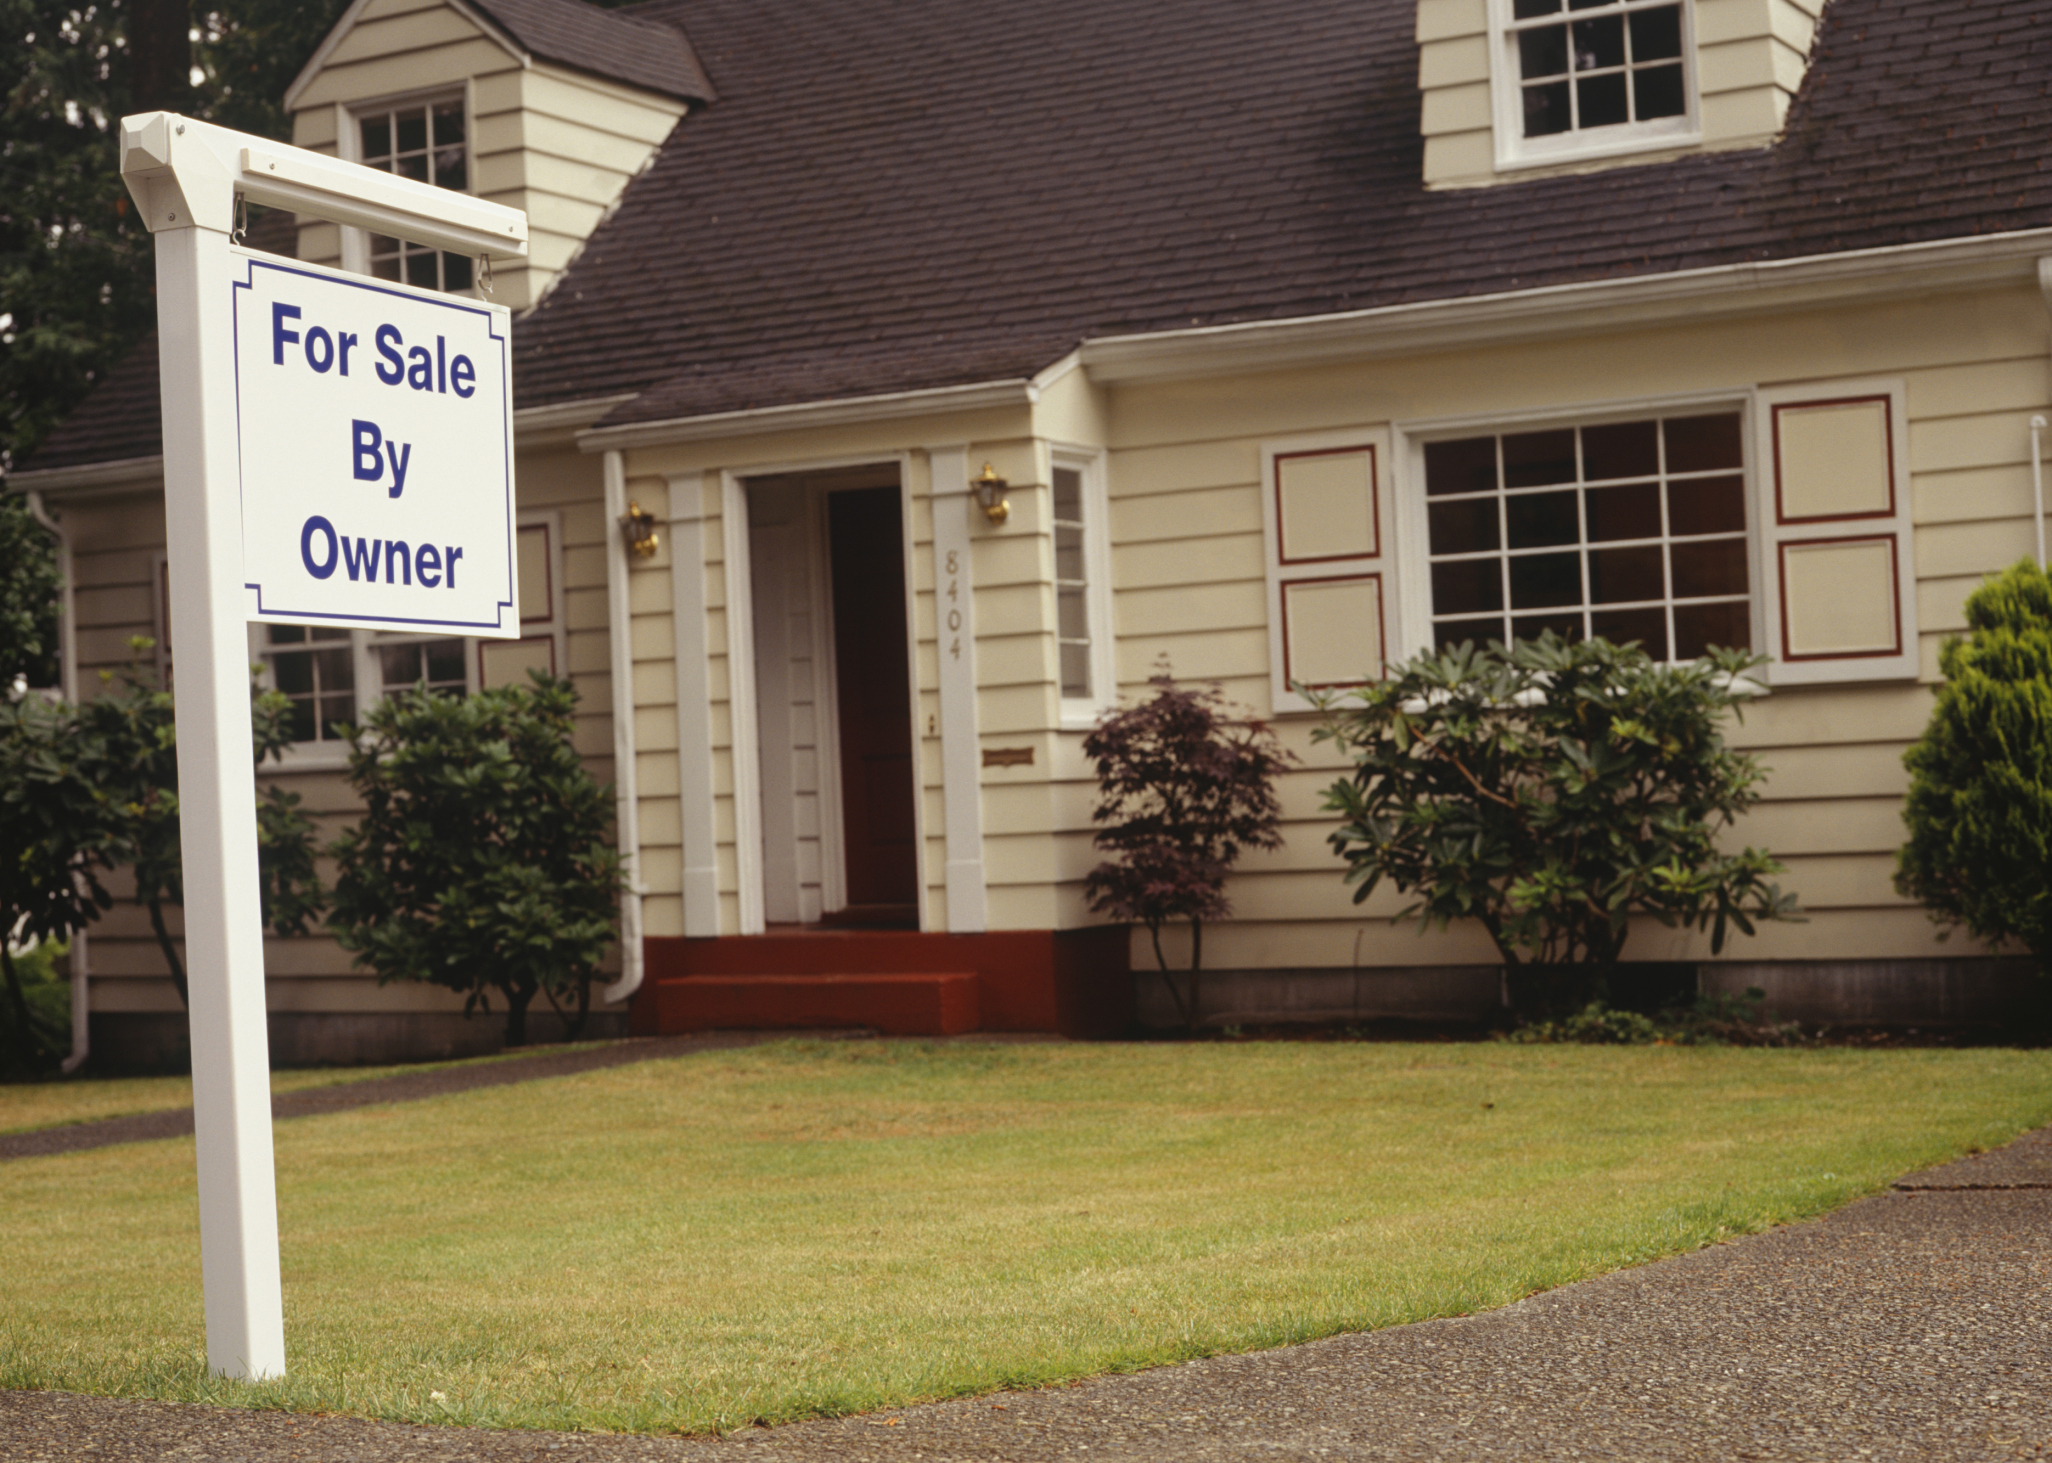 How to Find Out the Owner of a House